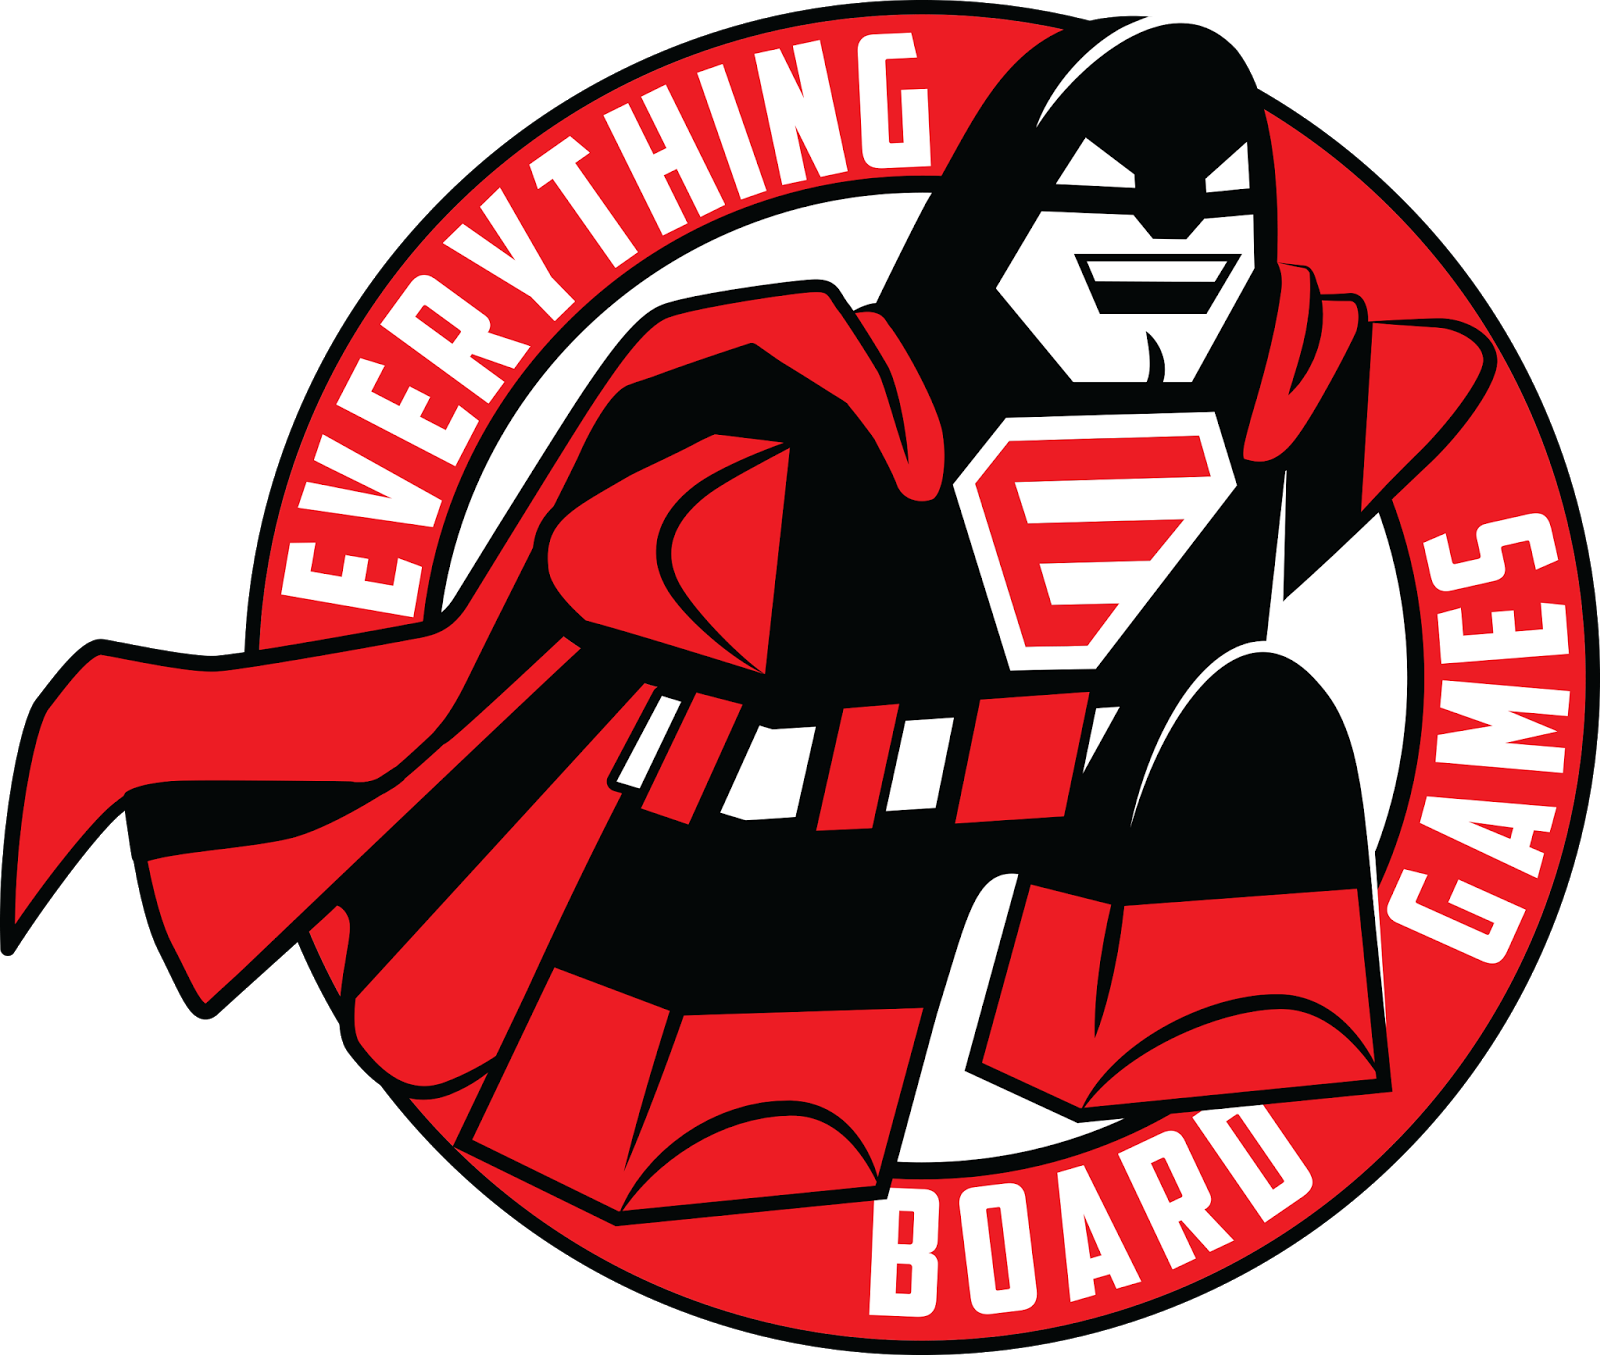 Gaming clipart board game. Everything t shirts everythingboardgames